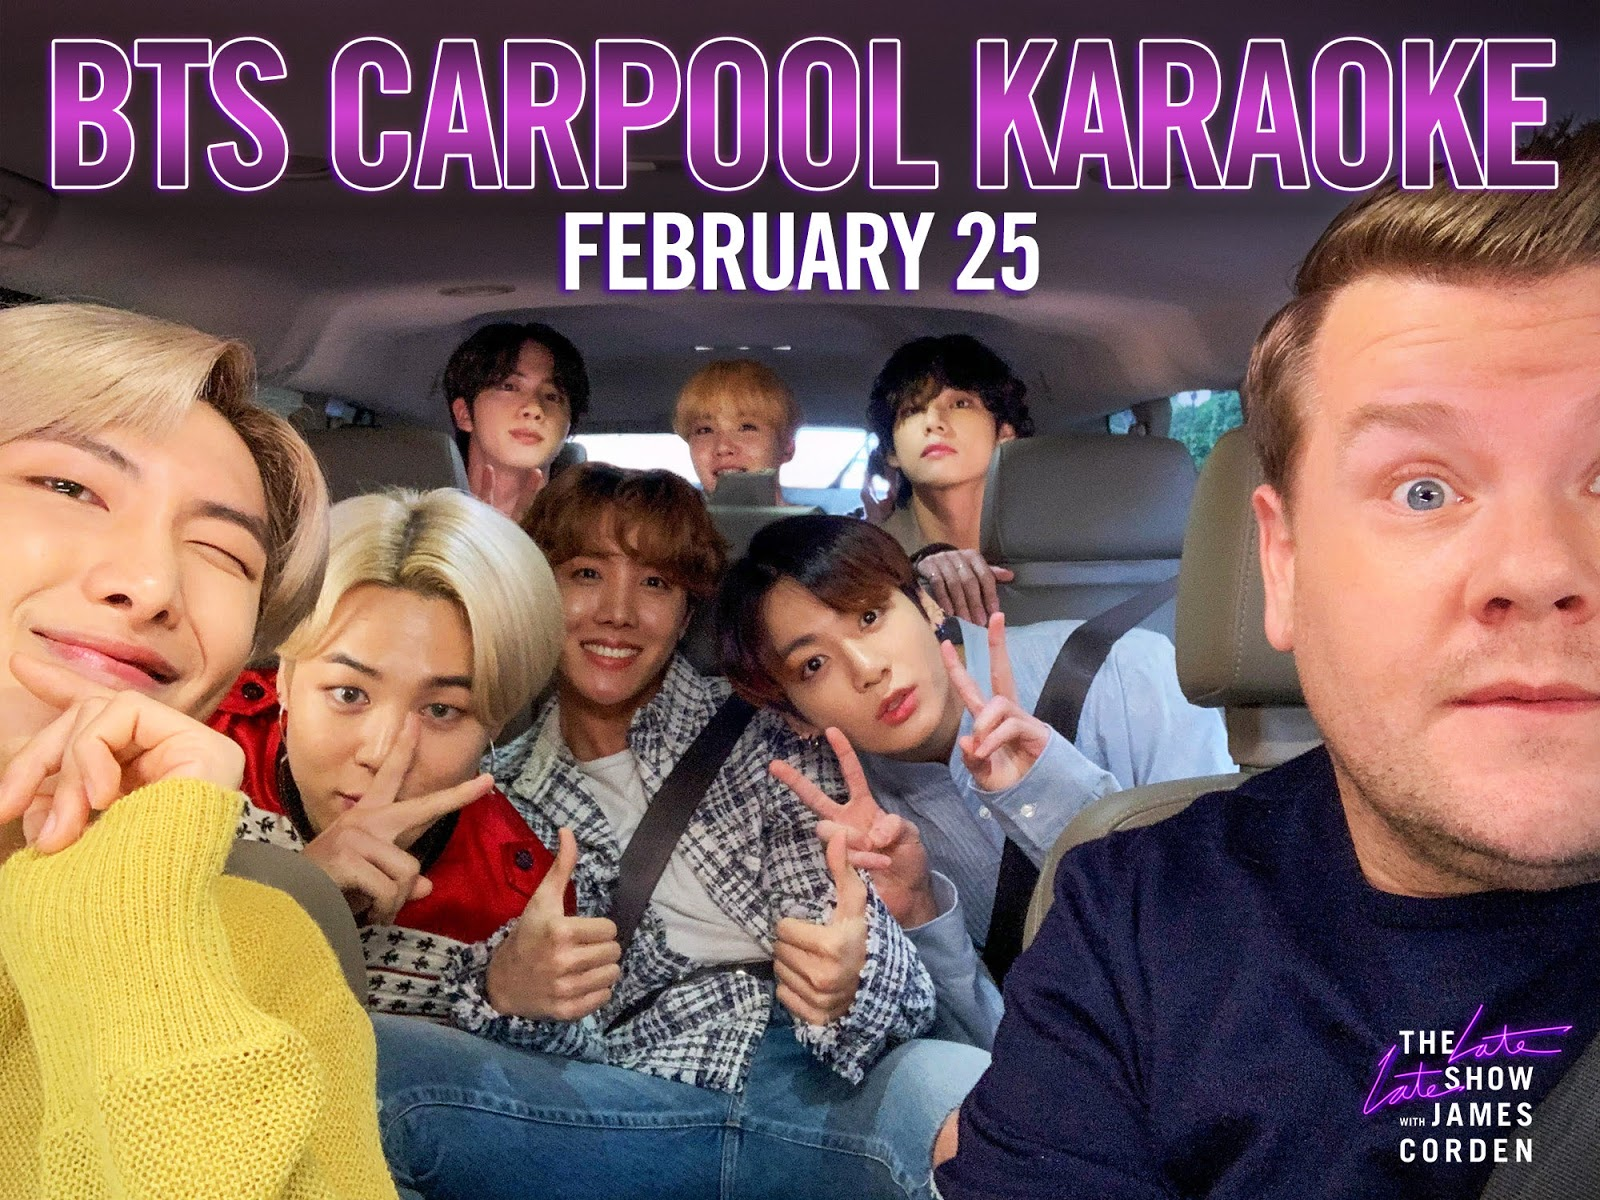 BTS Will Do The 'Carpool Karaoke' on 'The Late Late Show with James Corden'